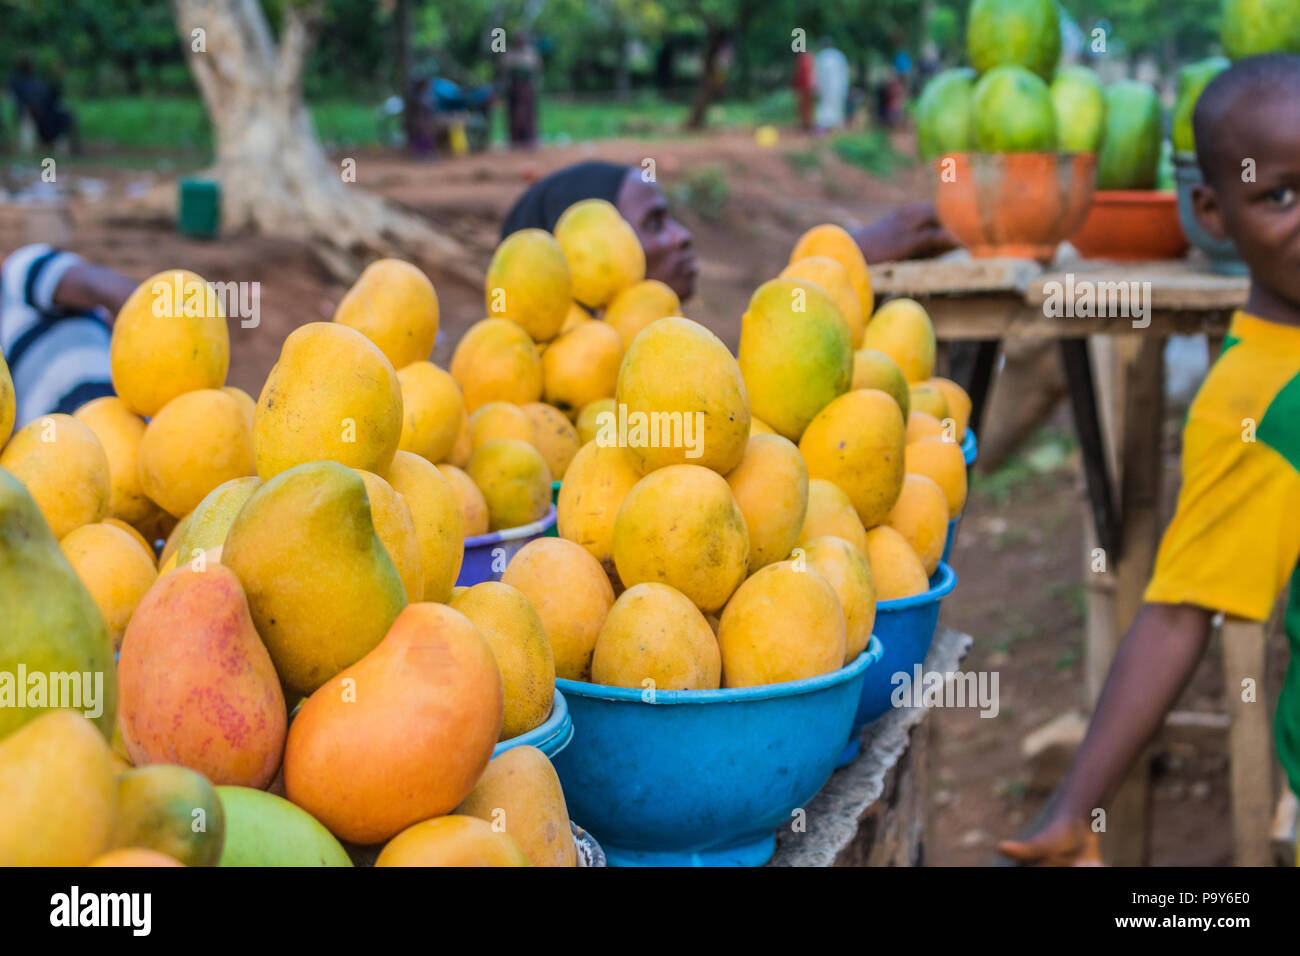 Yellow And Green African Mango Fruits Arranged In Small Portions